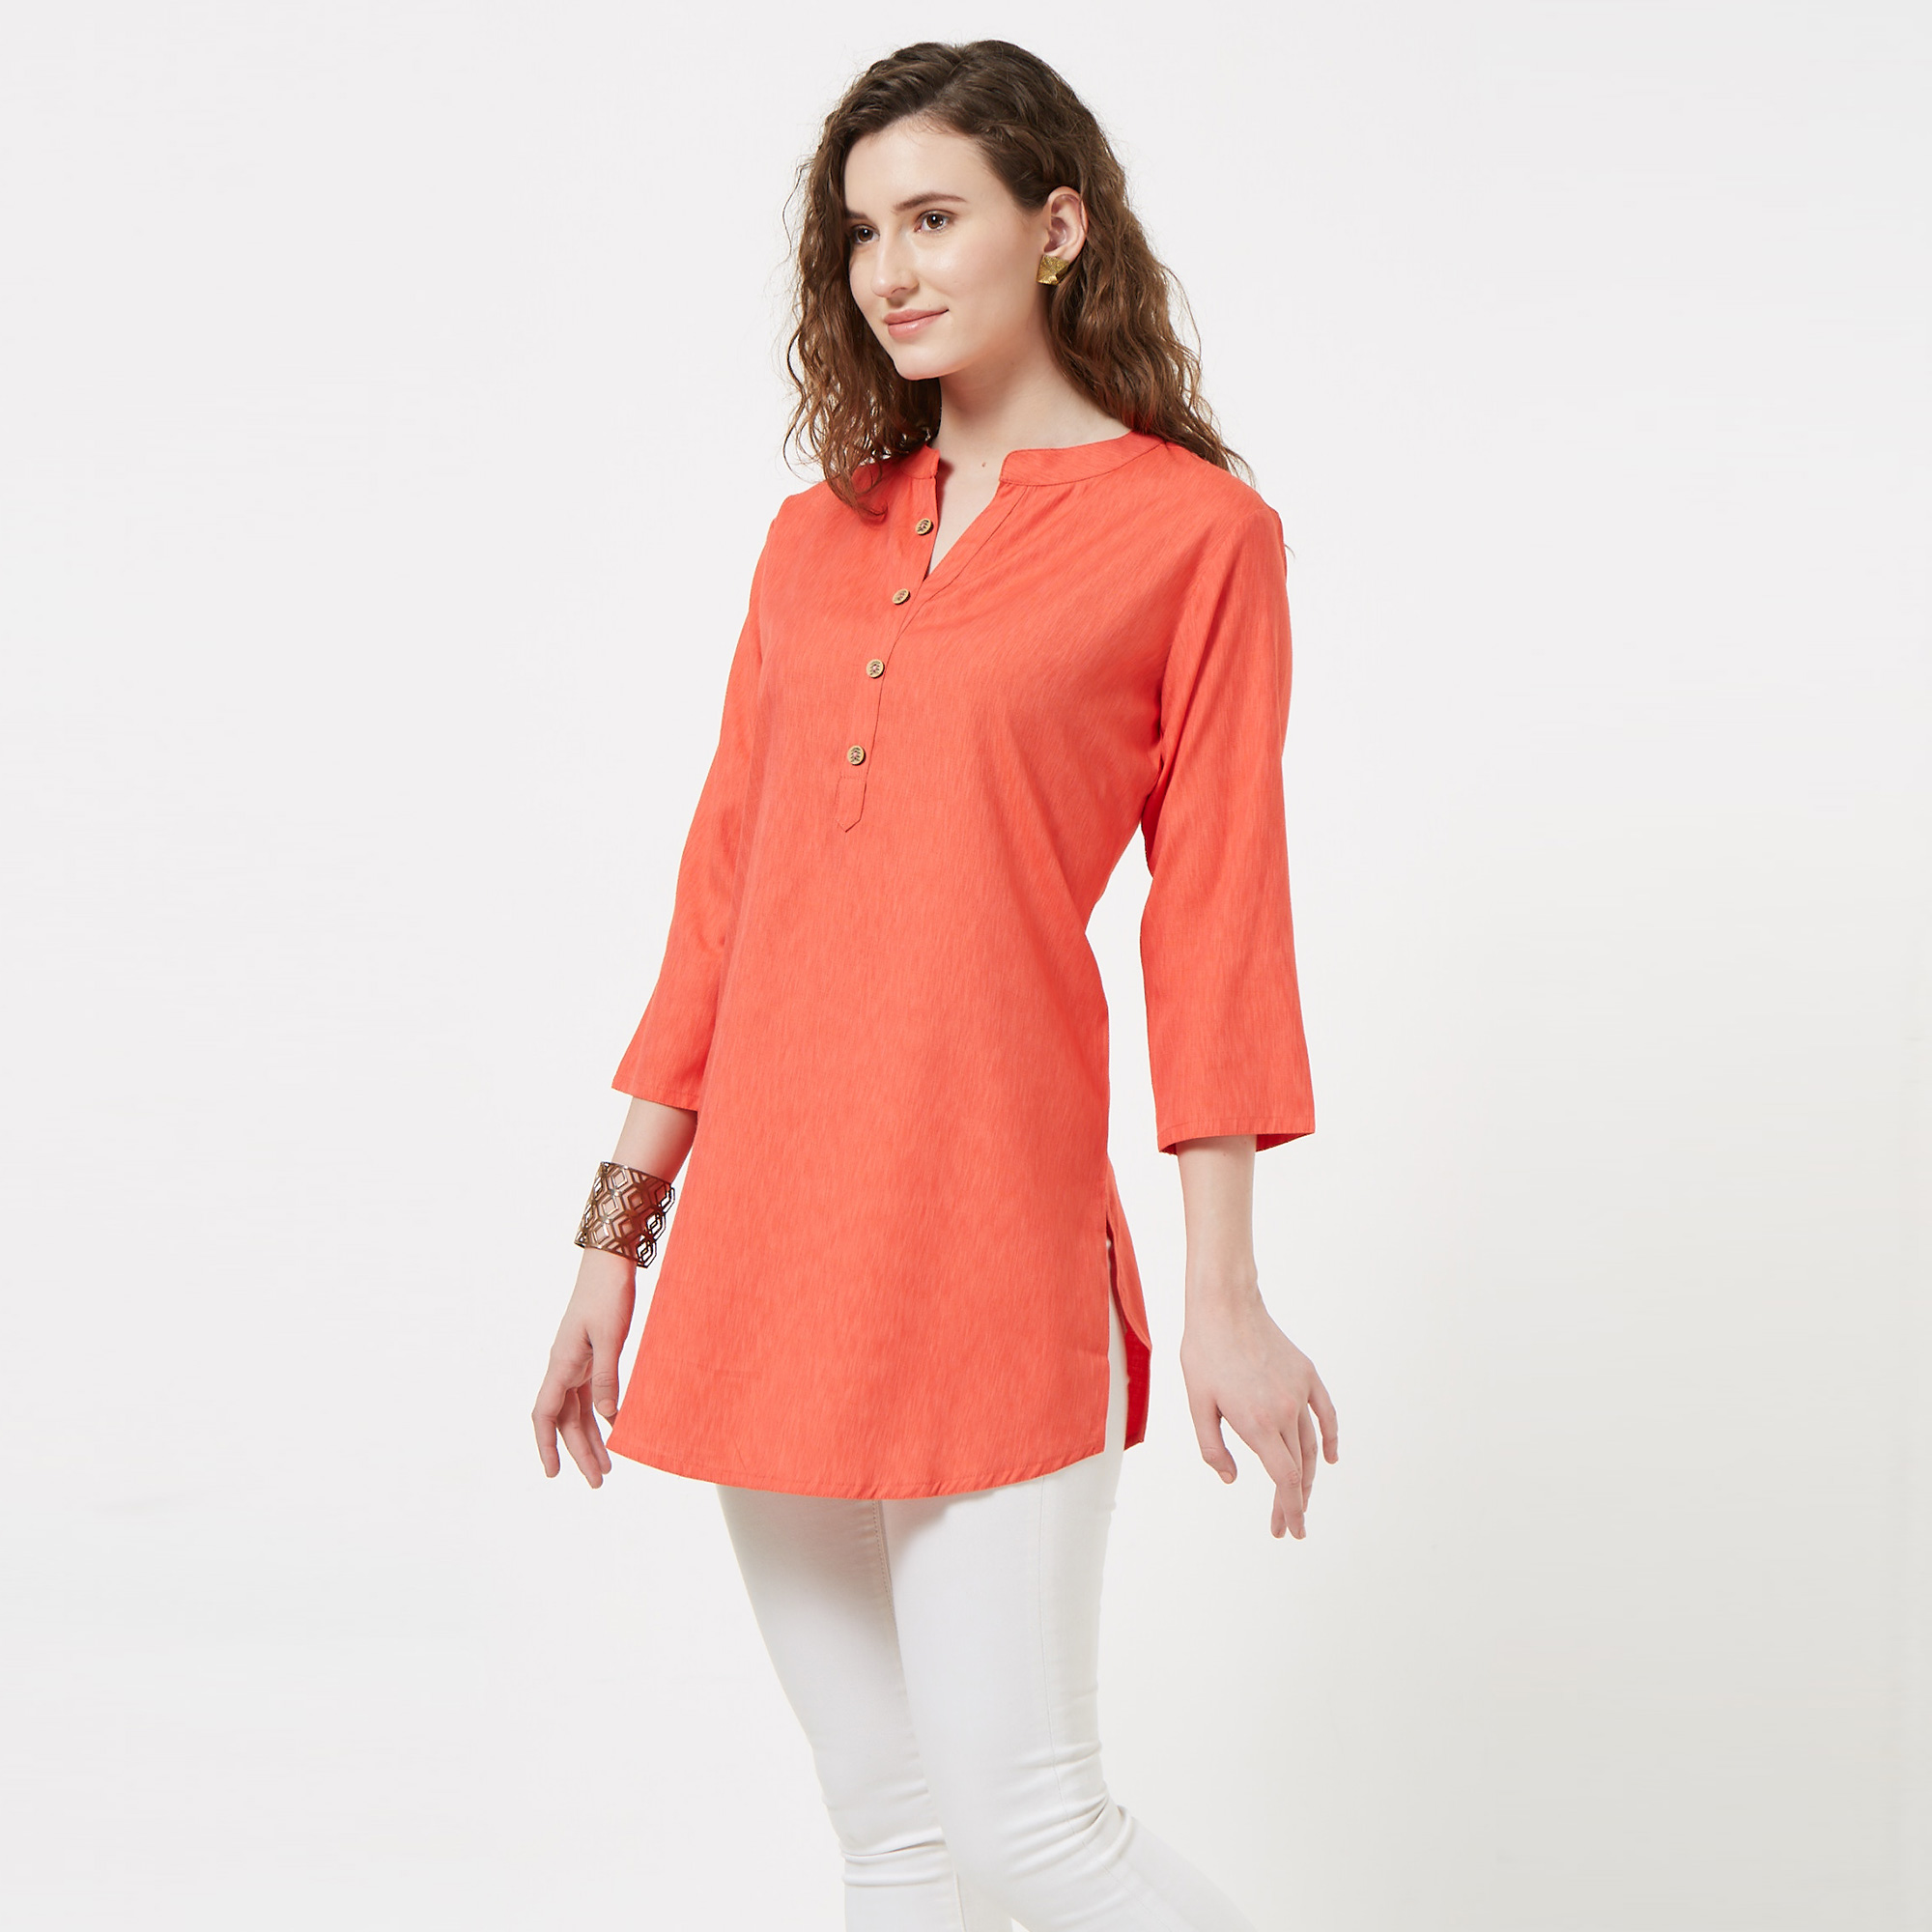 Elegant Coral Red Colored Casual Wear Cotton Top